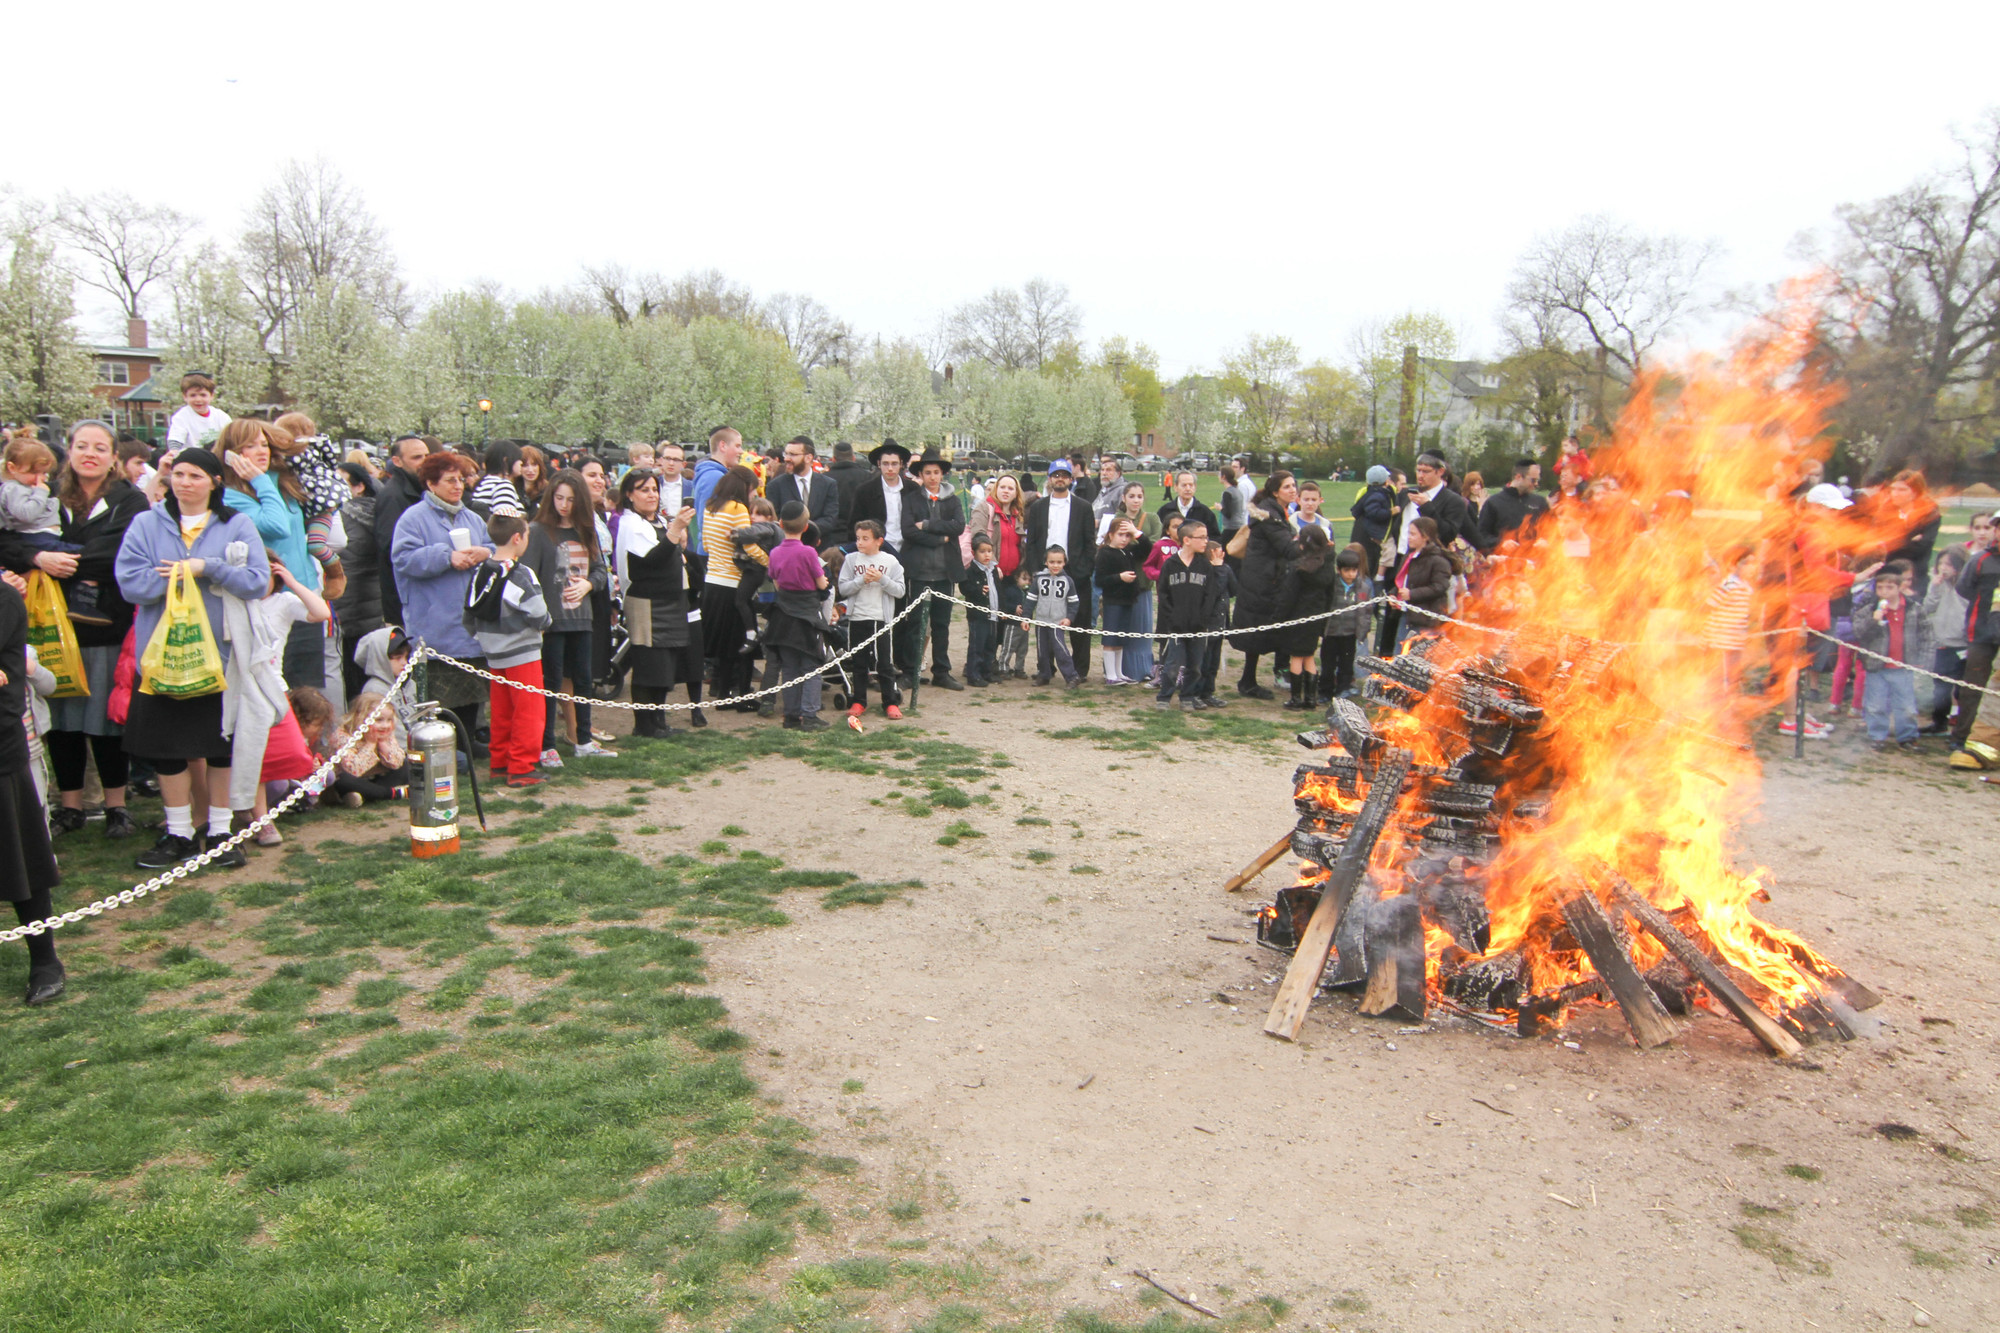 Along with games, activities and food, the bonfire is another highlight of the party in the park.